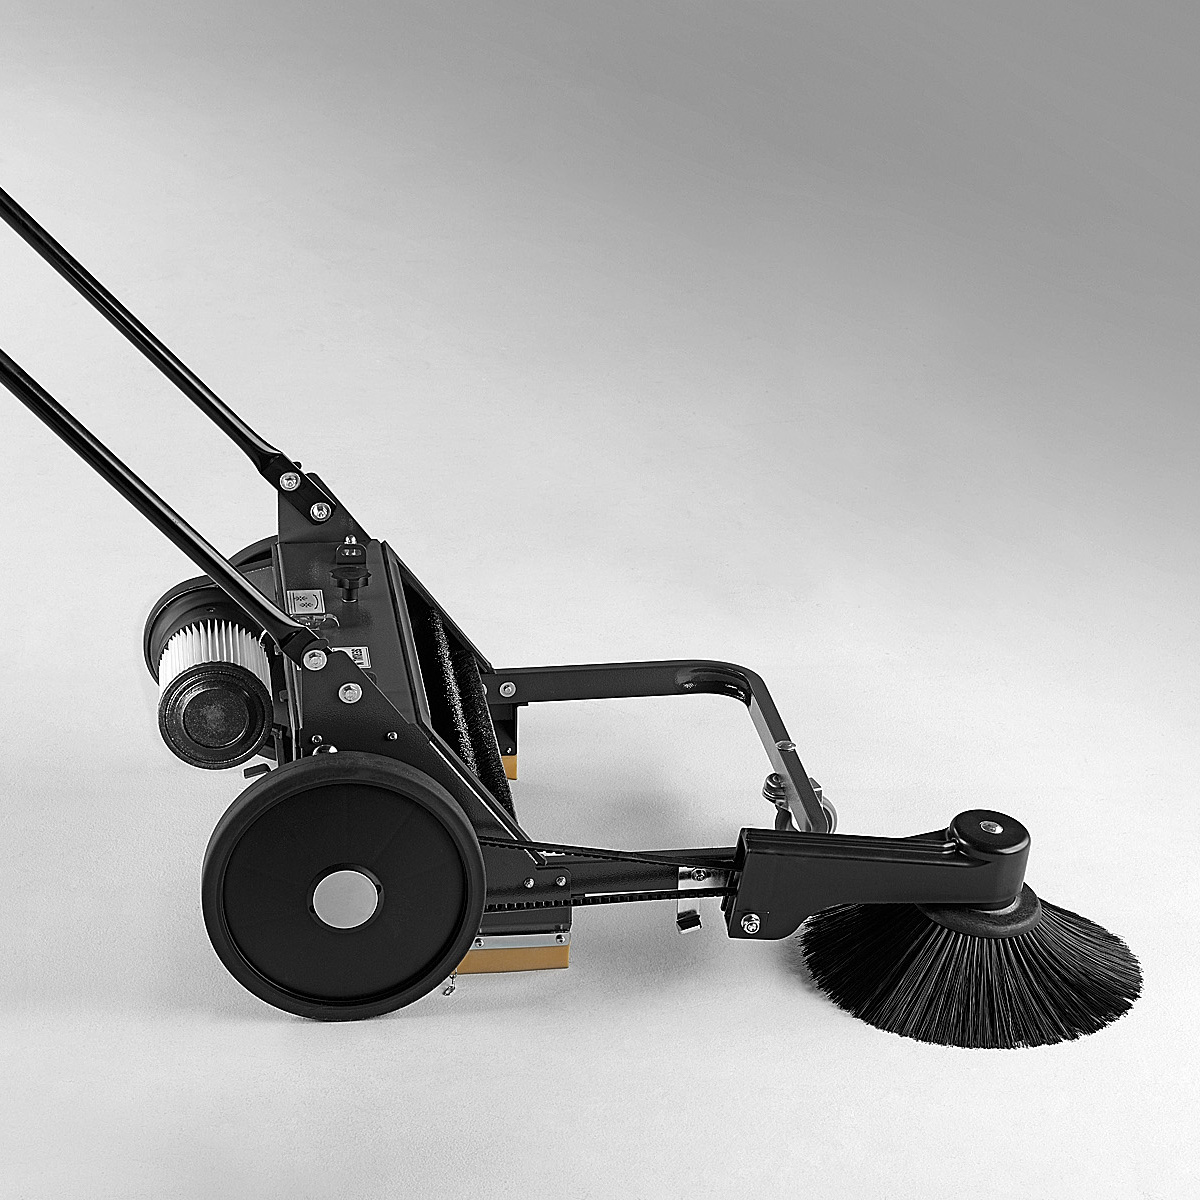 STRONG CHASSIS PICOBELLO 151 PATENTED MANUAL SWEEPER